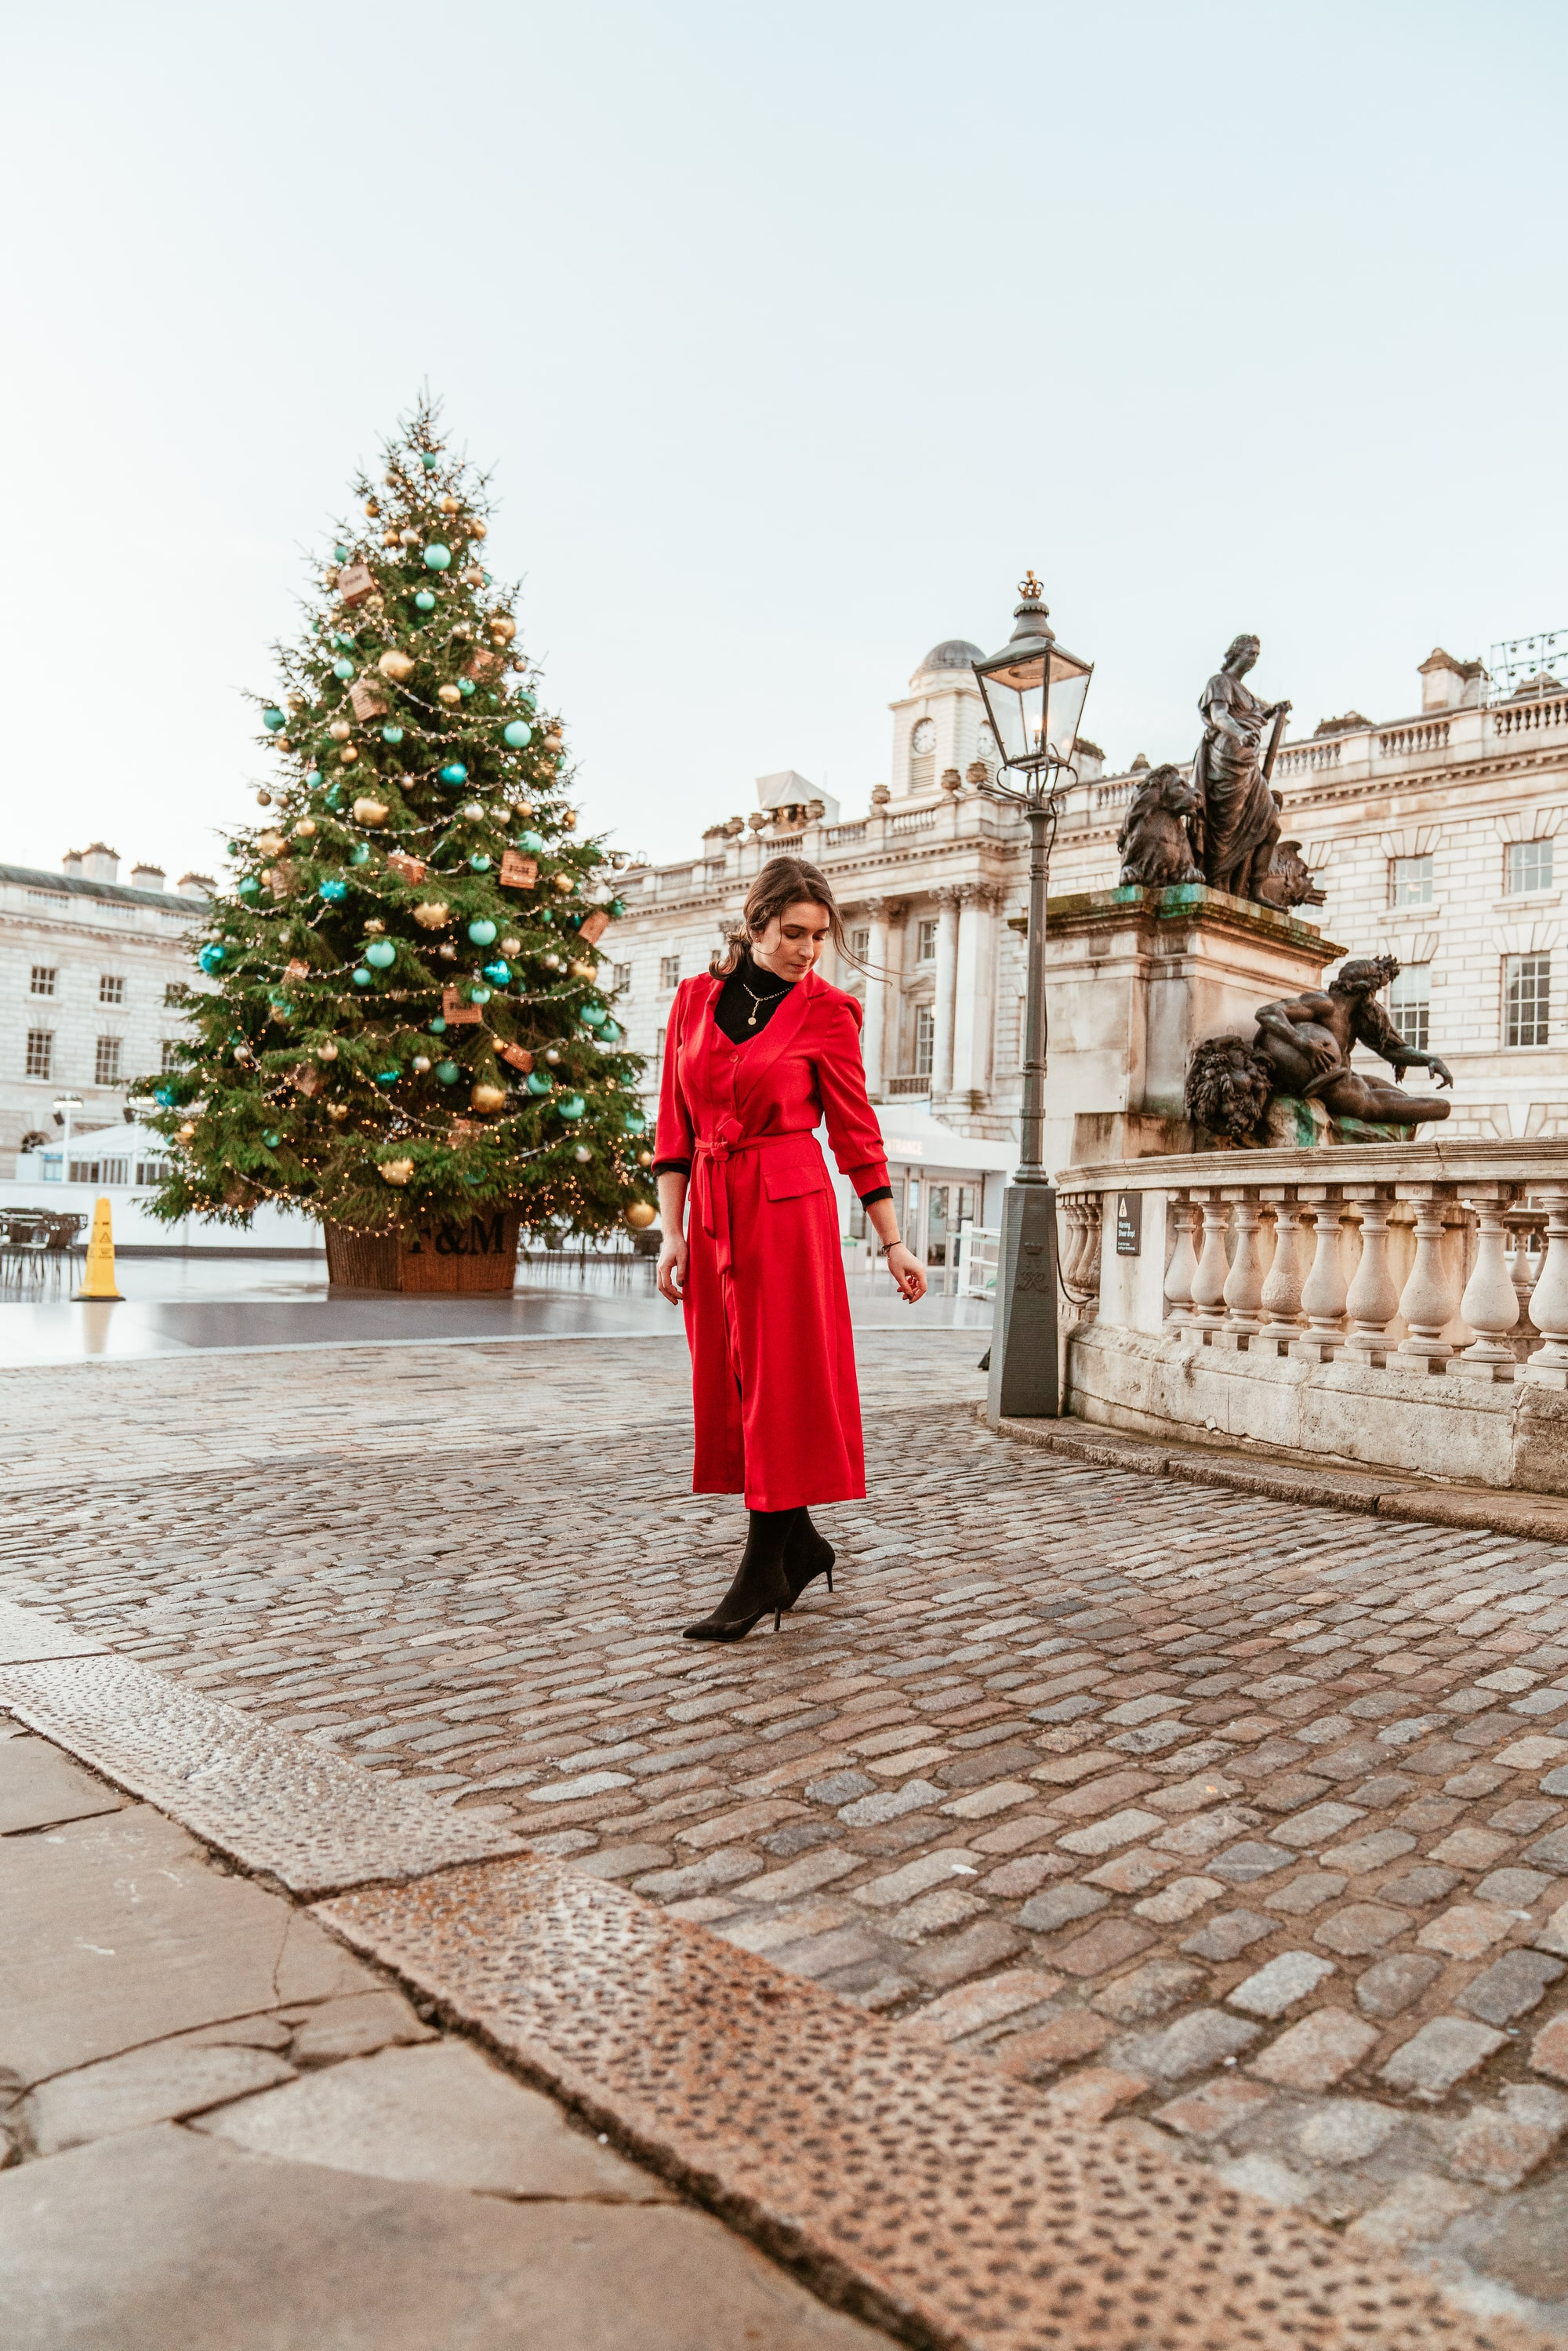 Our fist Christmas in London by Marisa Oliveira from Arara Pintada